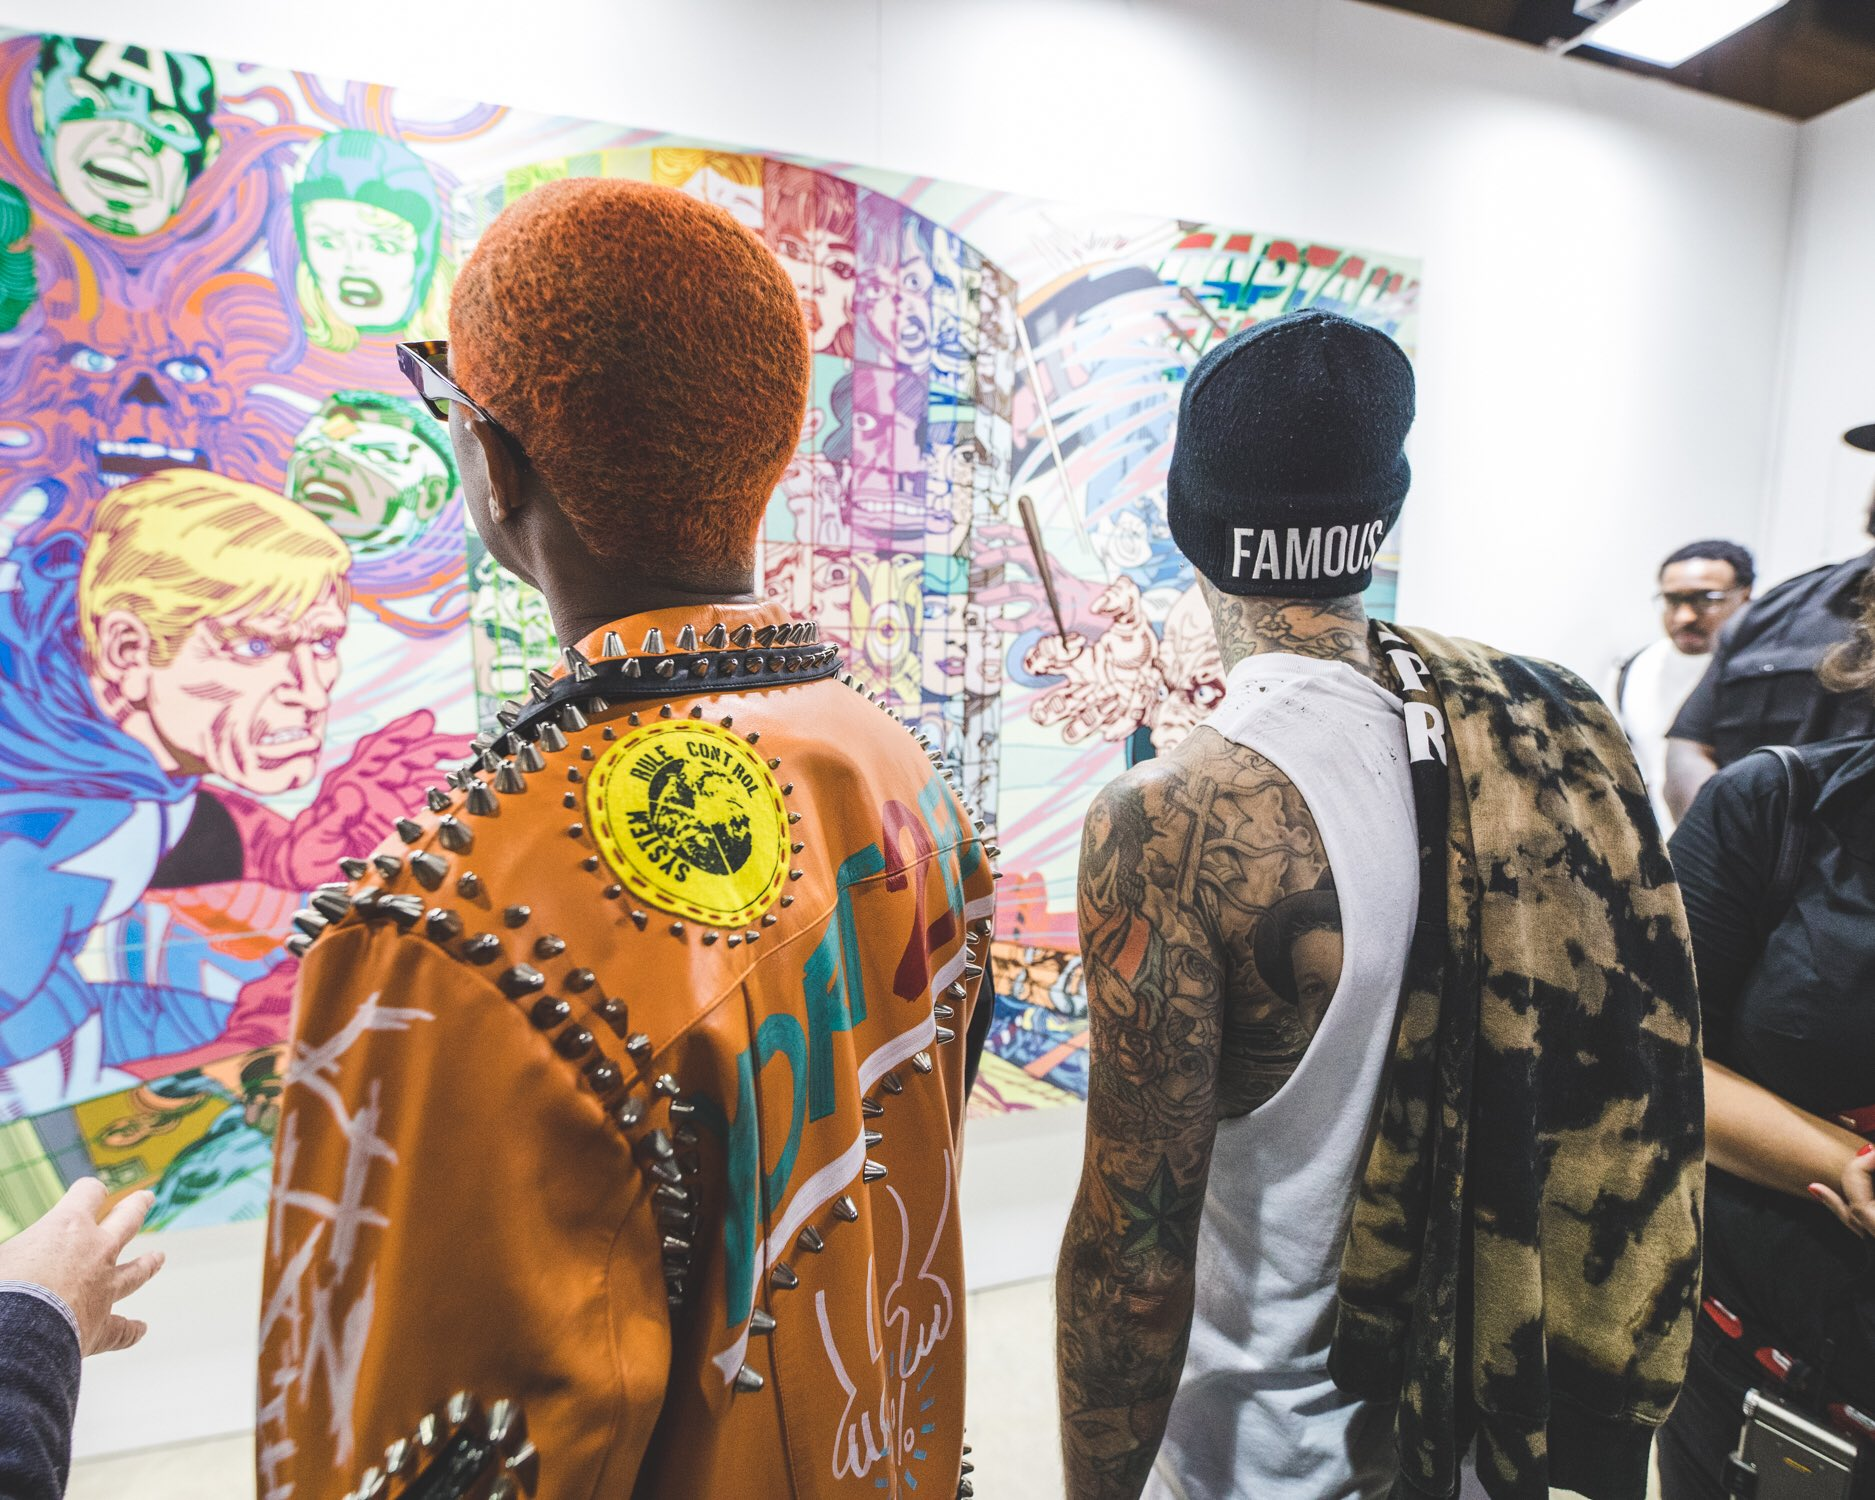 ������ @Pharrell  #ComplexCon https://t.co/eVcVeS2OYC